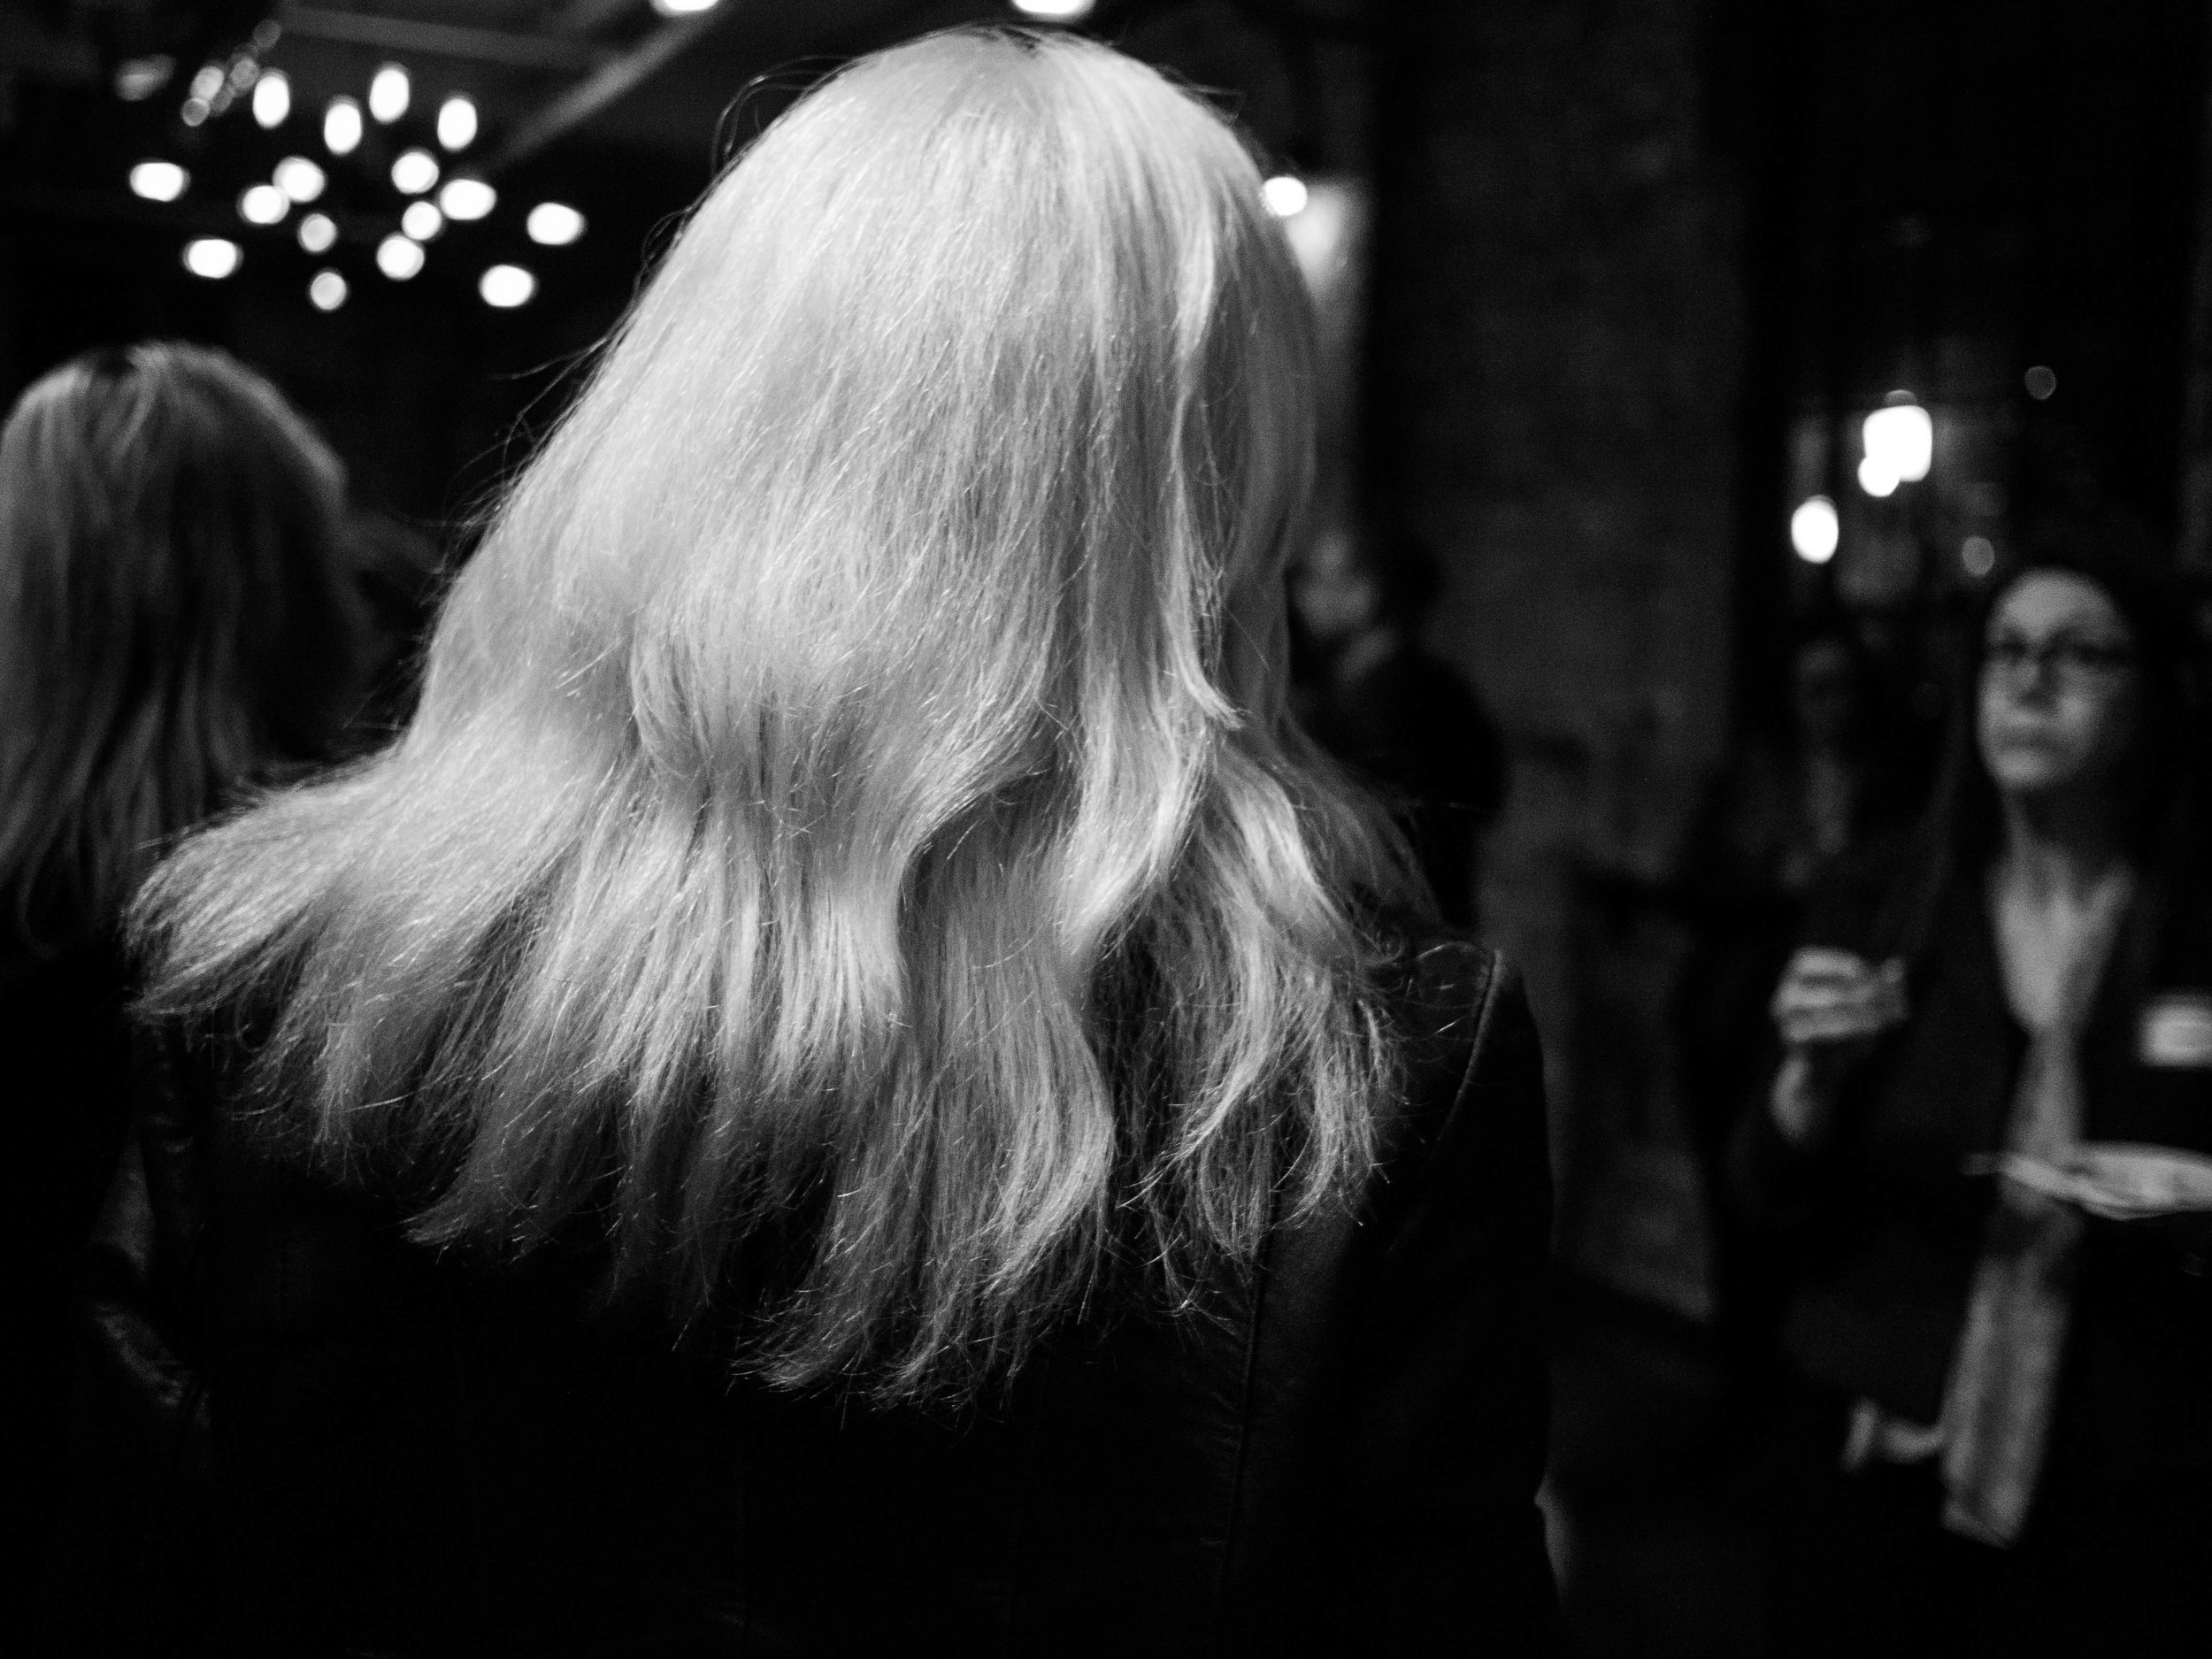 Woman With Pale Hair